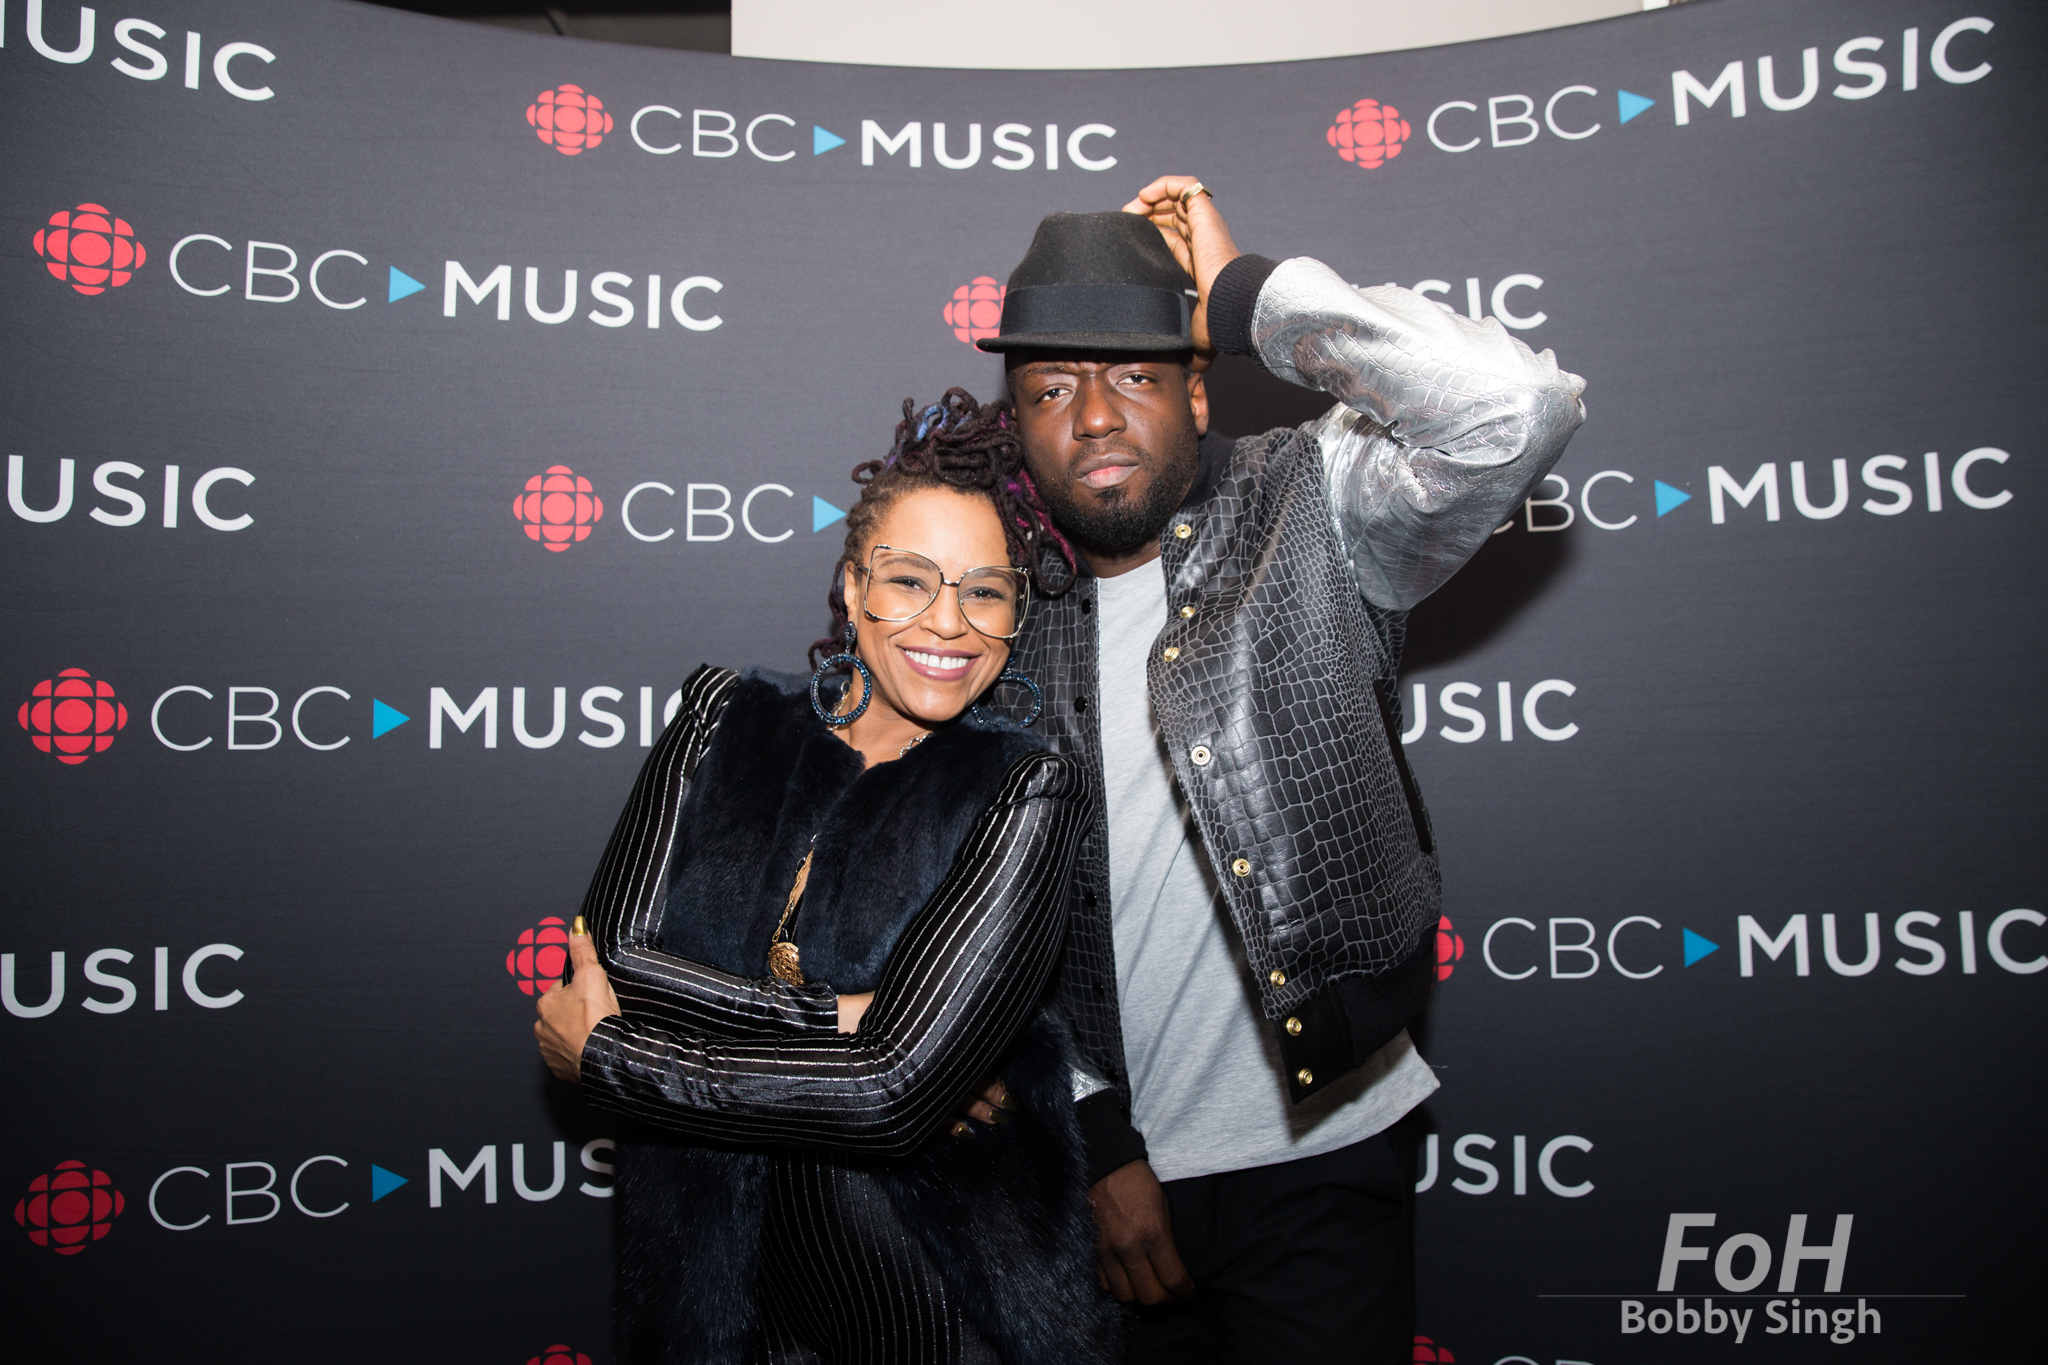 CBC Playlist Live - 2019 JUNOS edition. 03.17.2019. London, ON